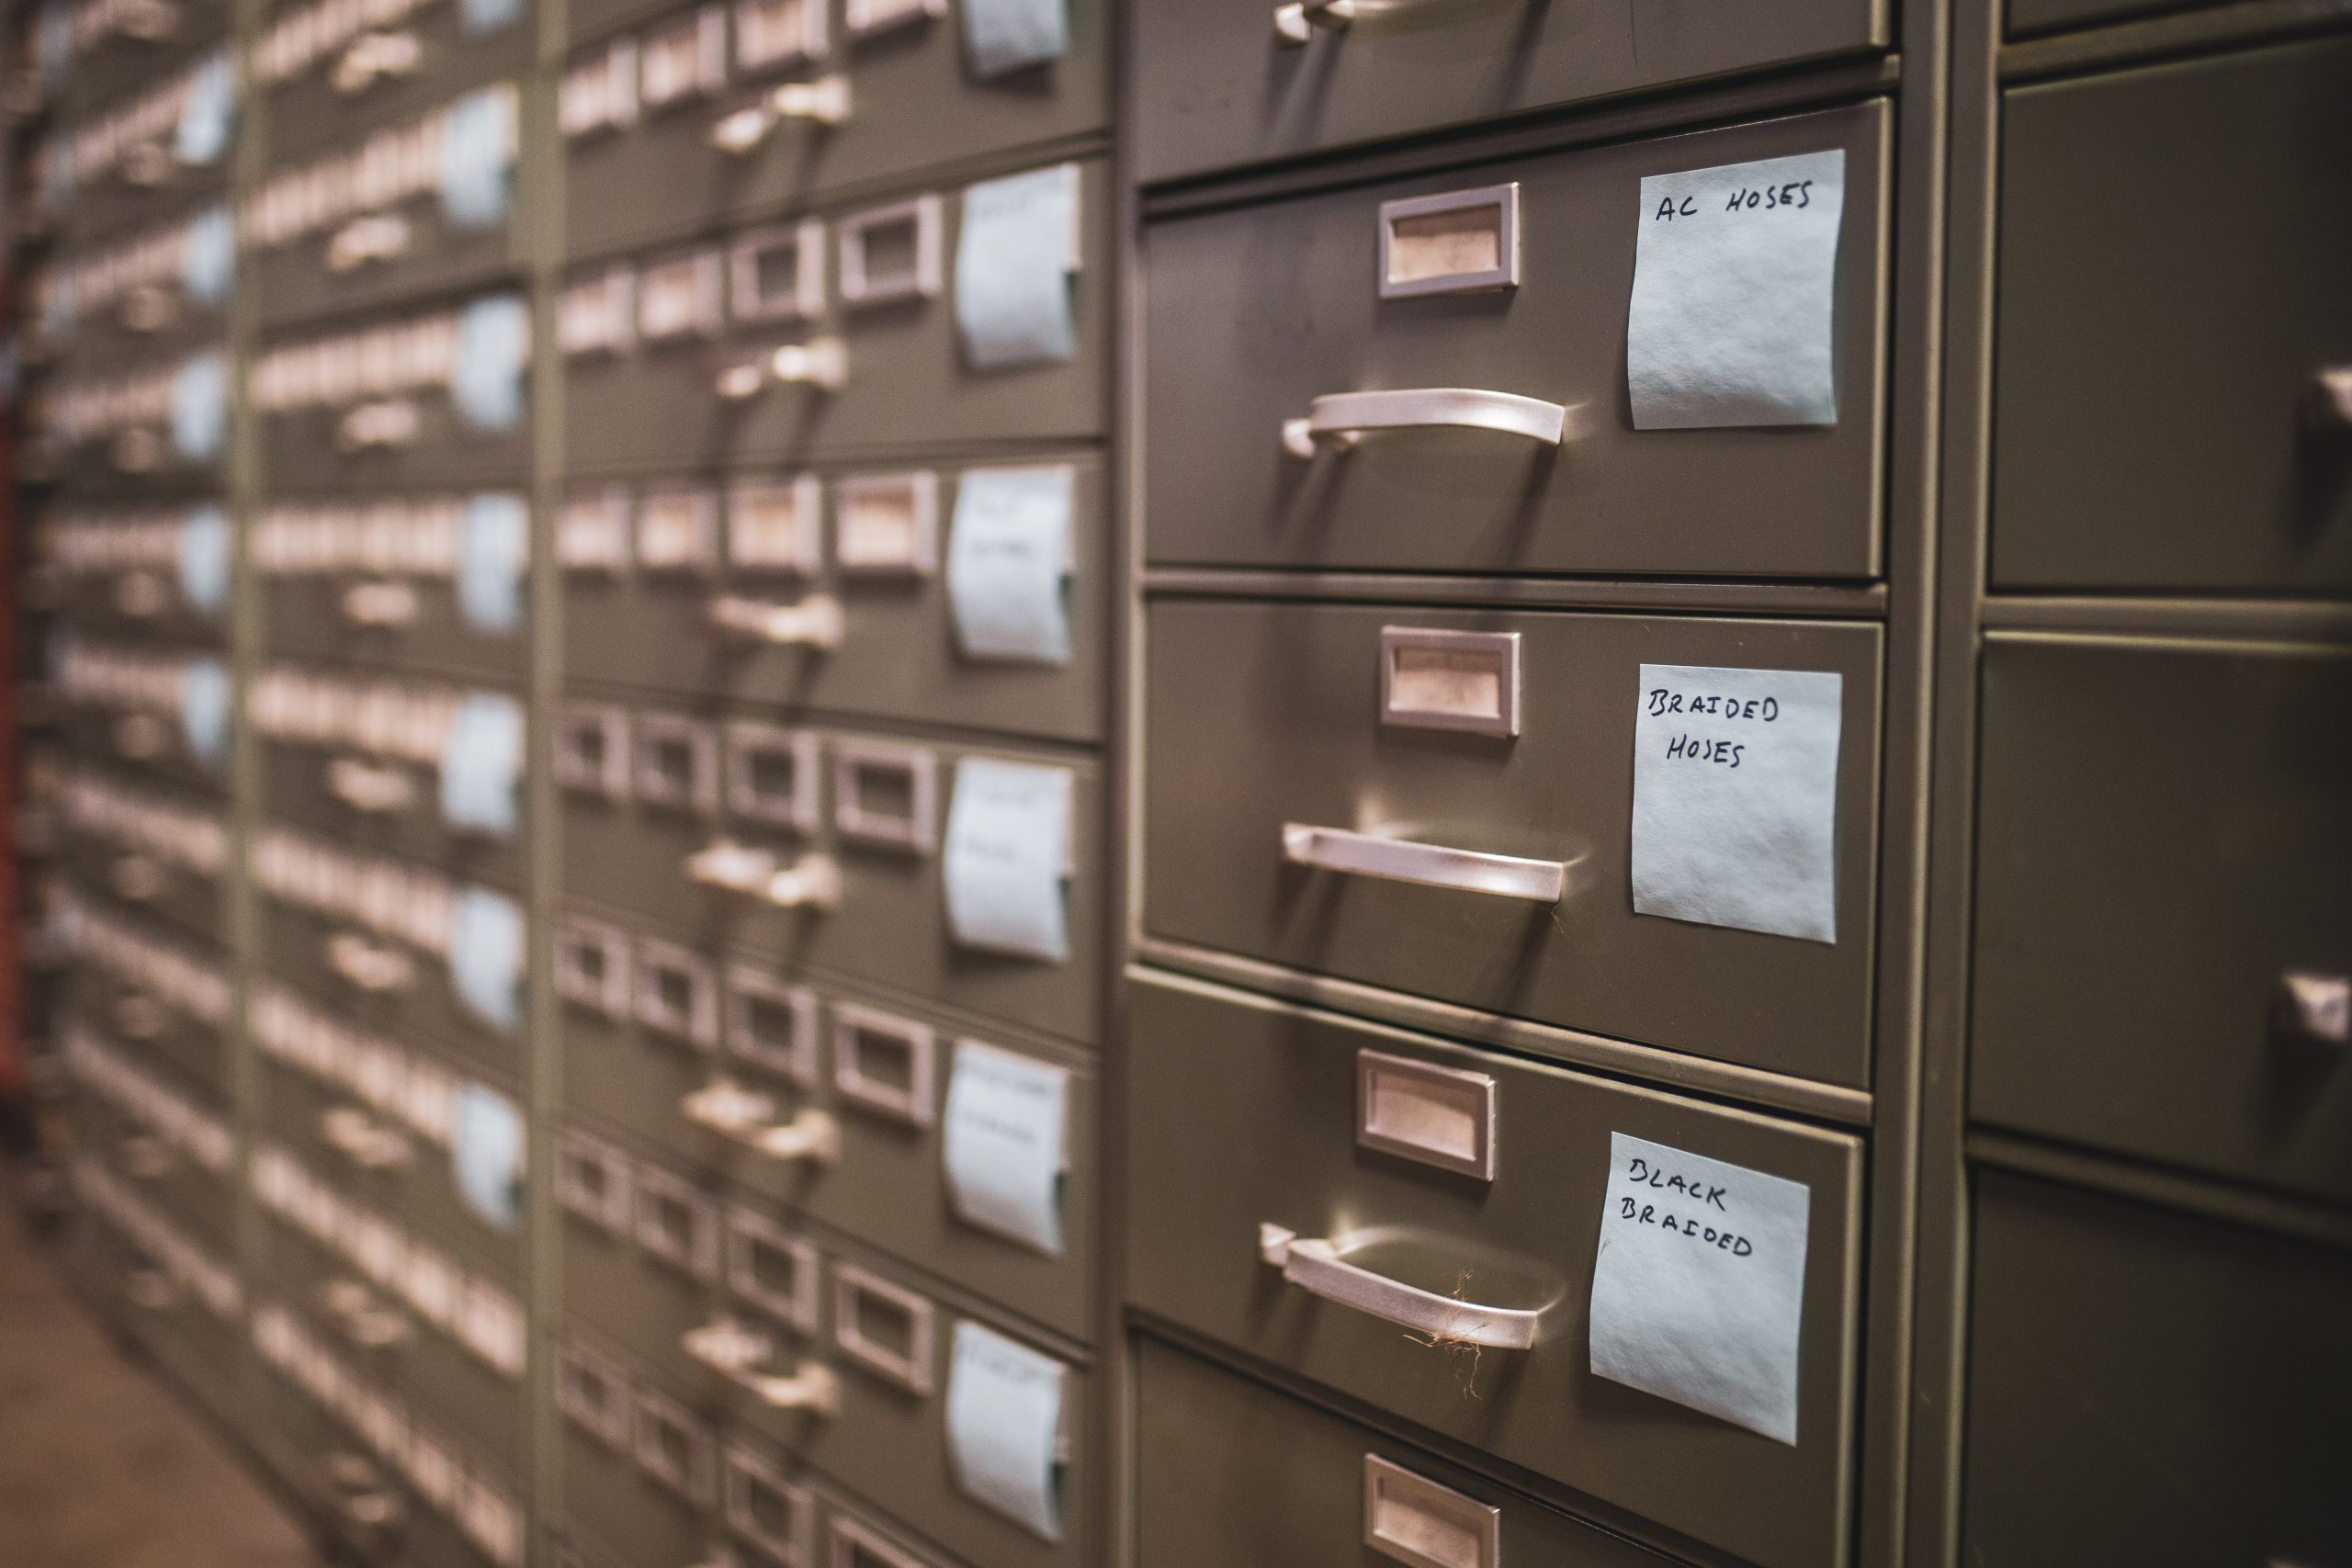 American Speed Company filing system